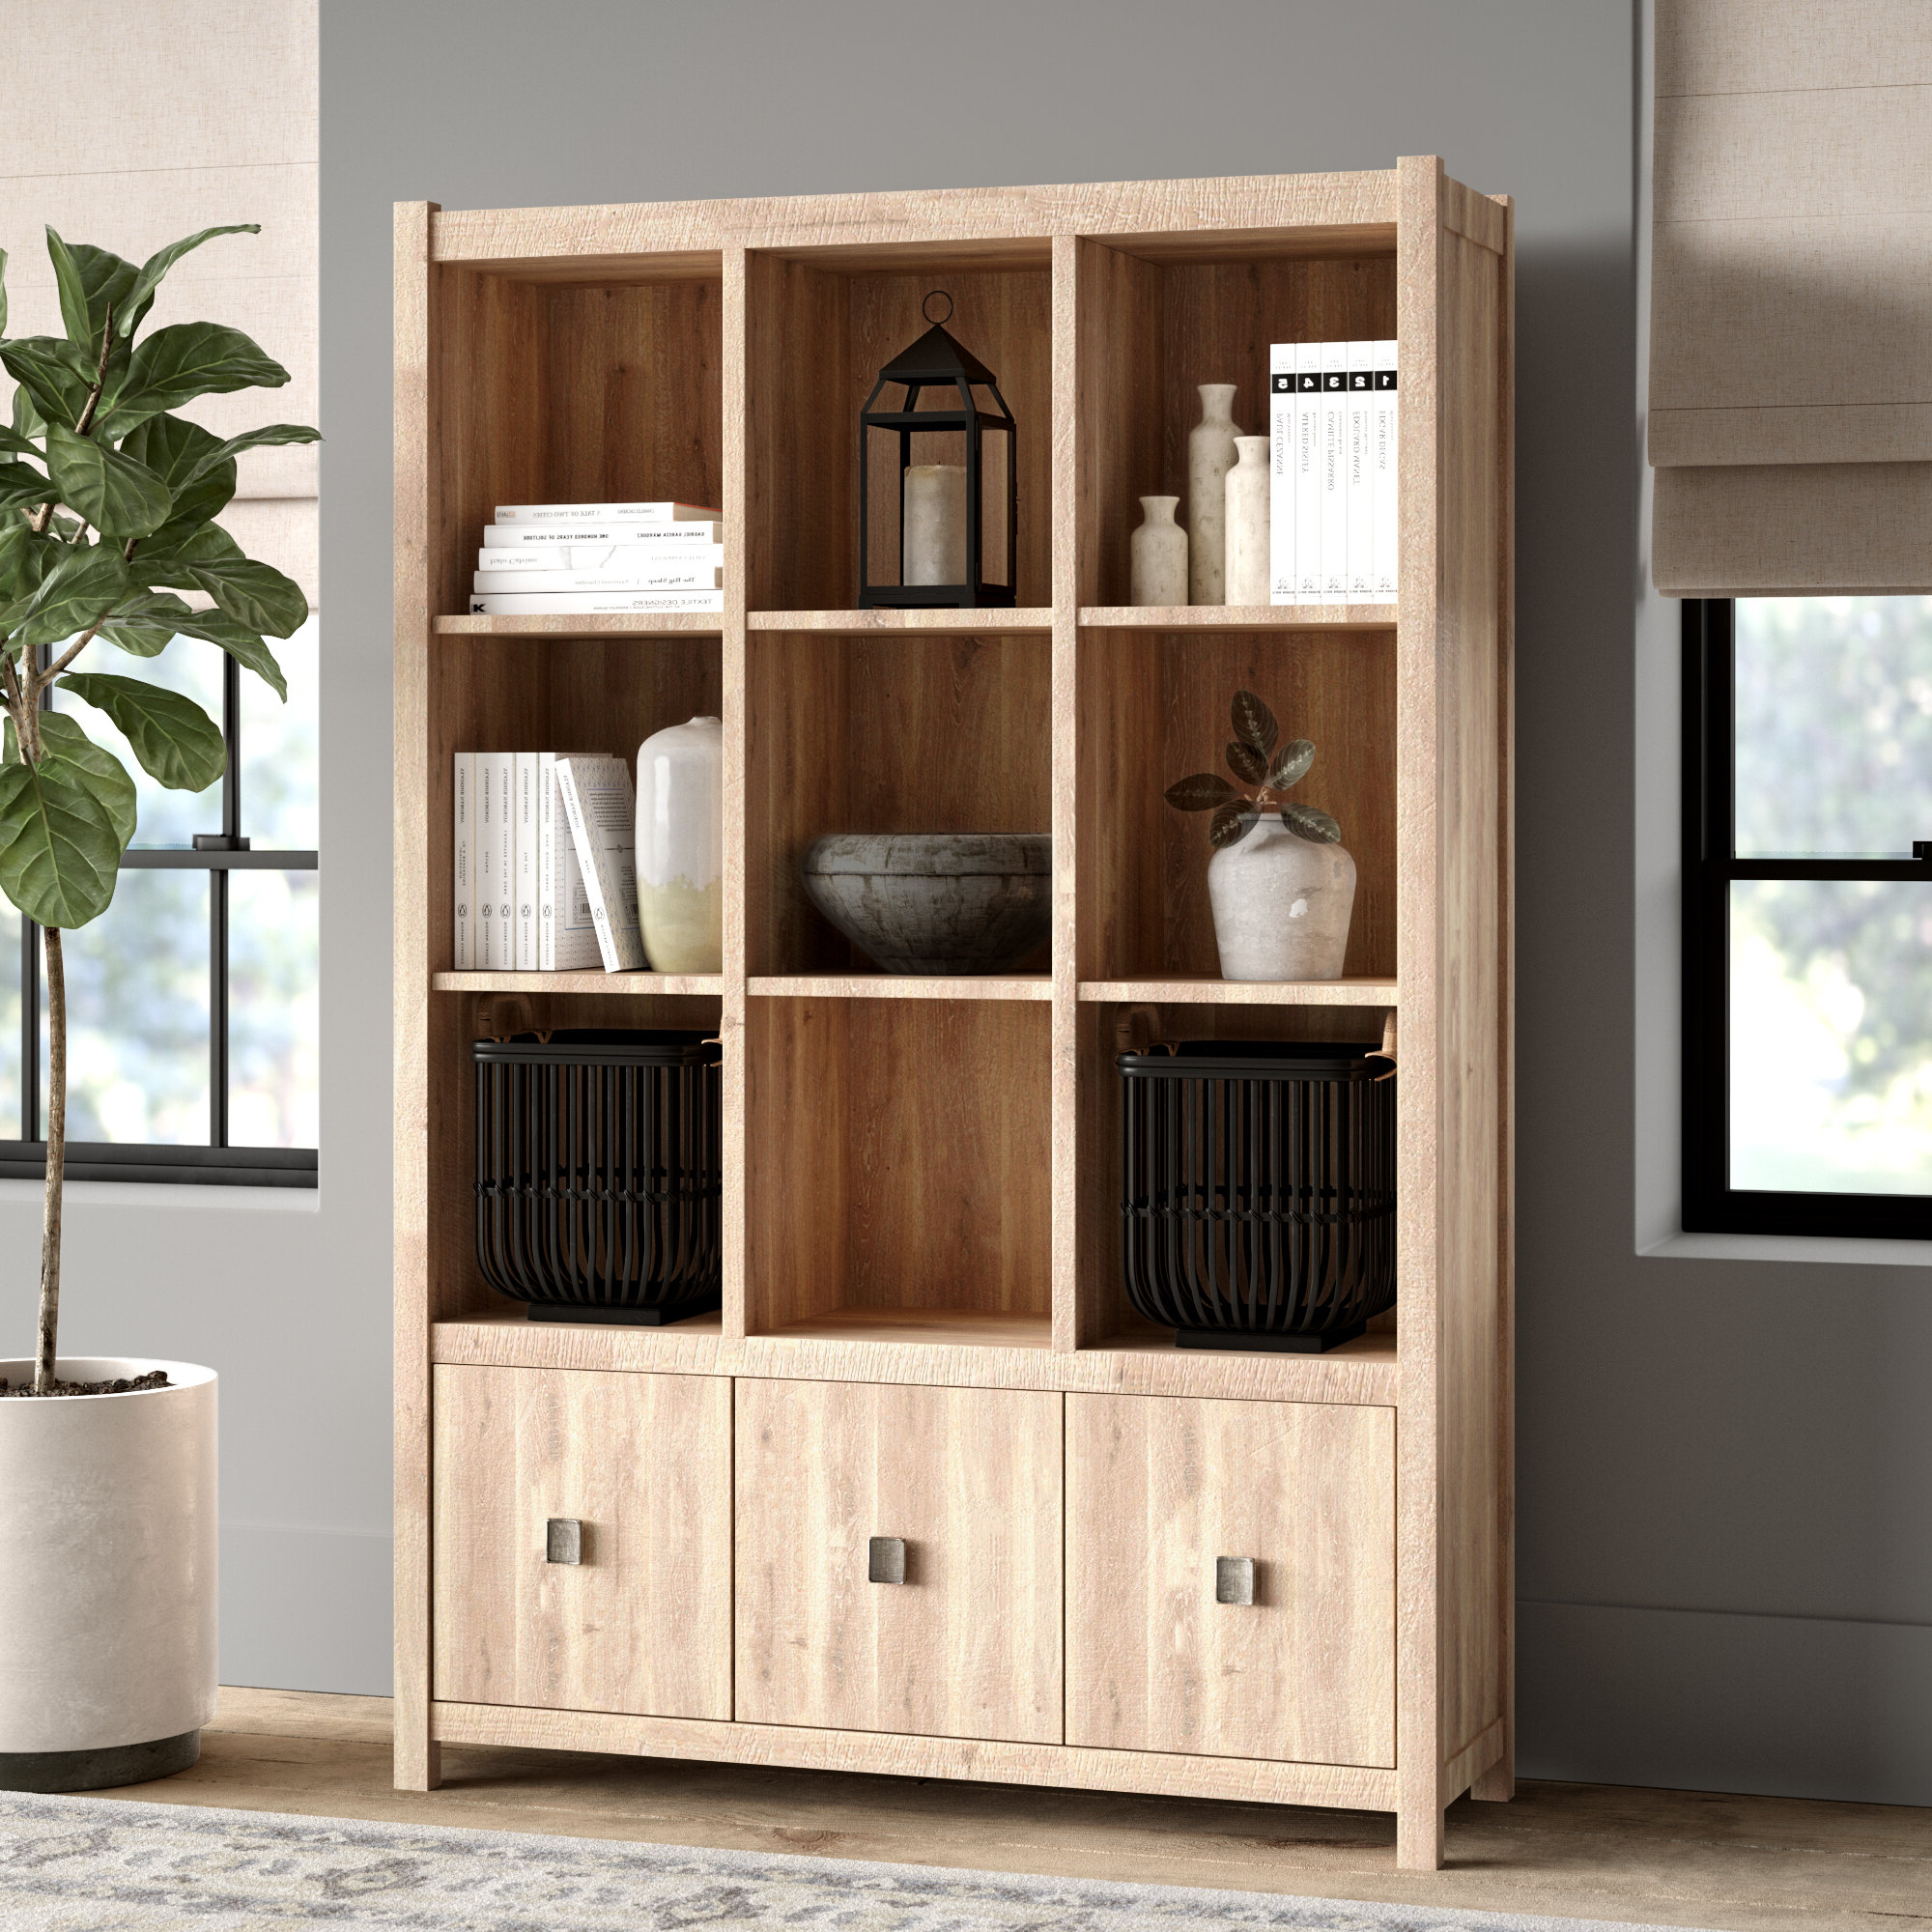 Strauss Cube Unit Bookcases With Regard To Current Strauss Cube Unit Bookcase (Gallery 2 of 20)